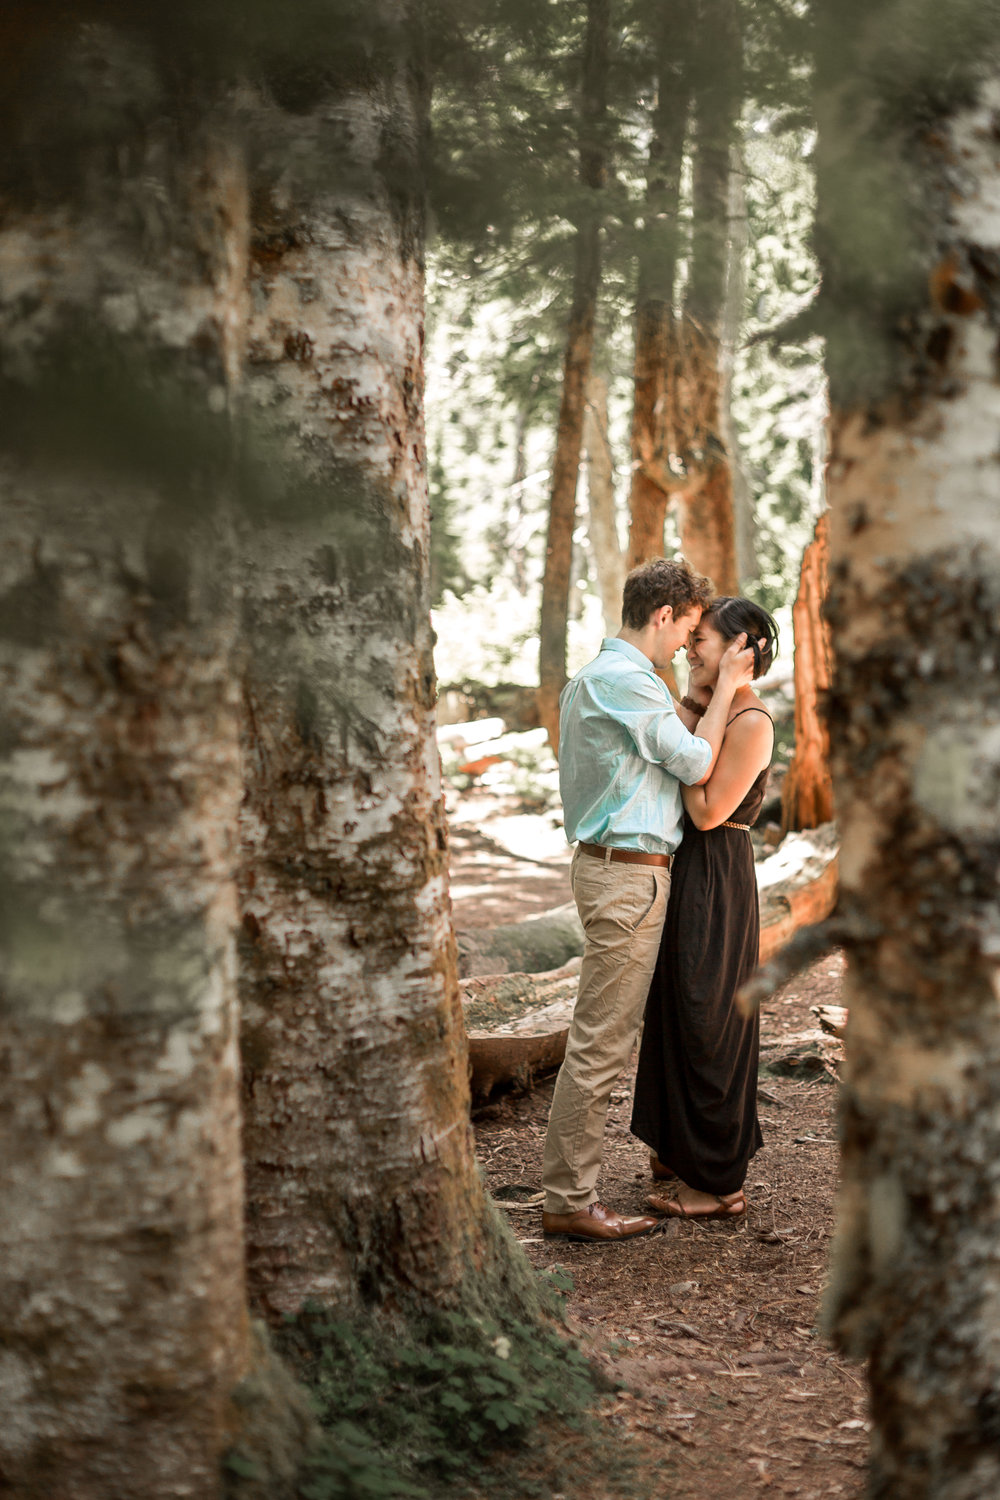 nicole-daacke-photography-hiking-engagement-session-in-snoqualmie-pass-washington-wedding-photographer-seattle-elopement-photography-adventurous-hiking-photos-heather-lake-washington-trails-19.jpg